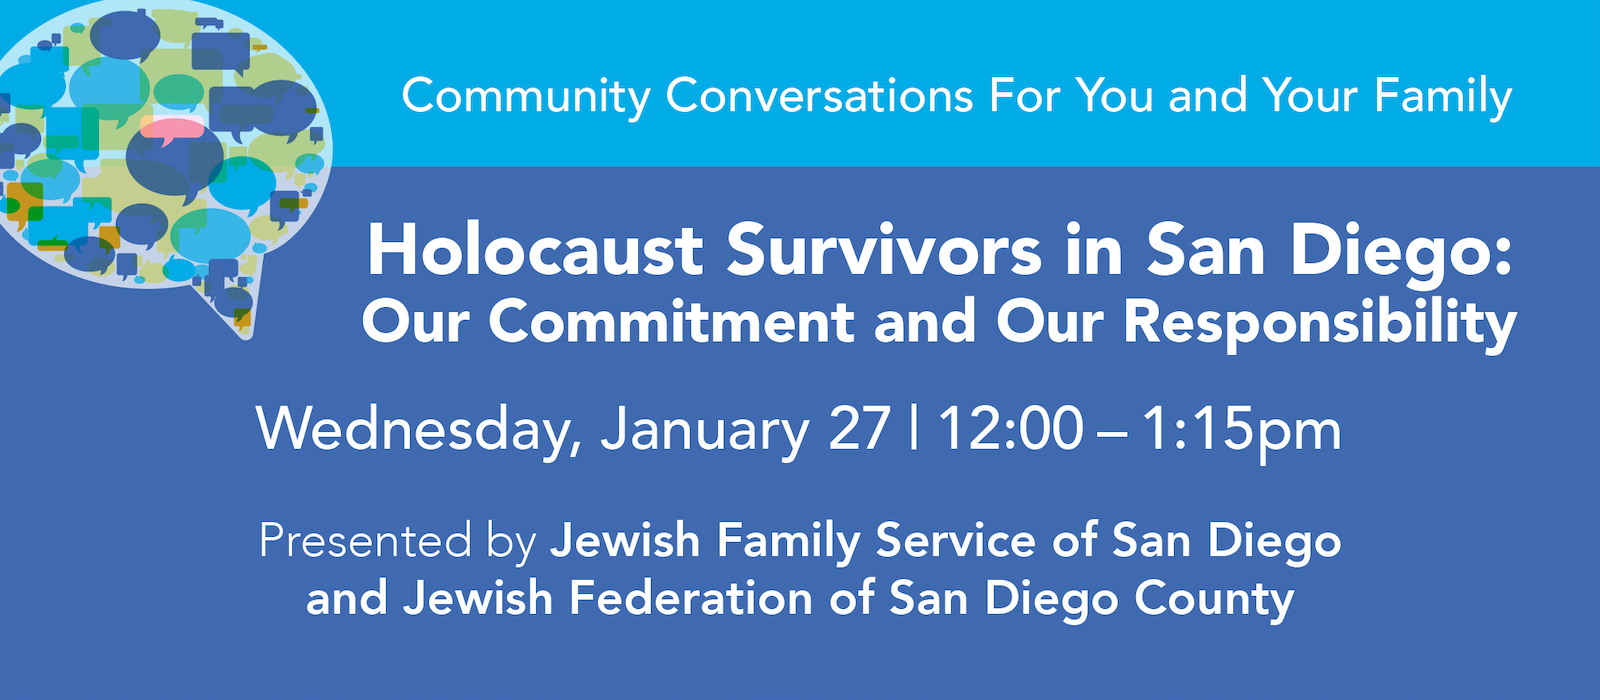 Community Conversation: Holocaust Survivors in San Diego: Our Commitment and Our Responsibility